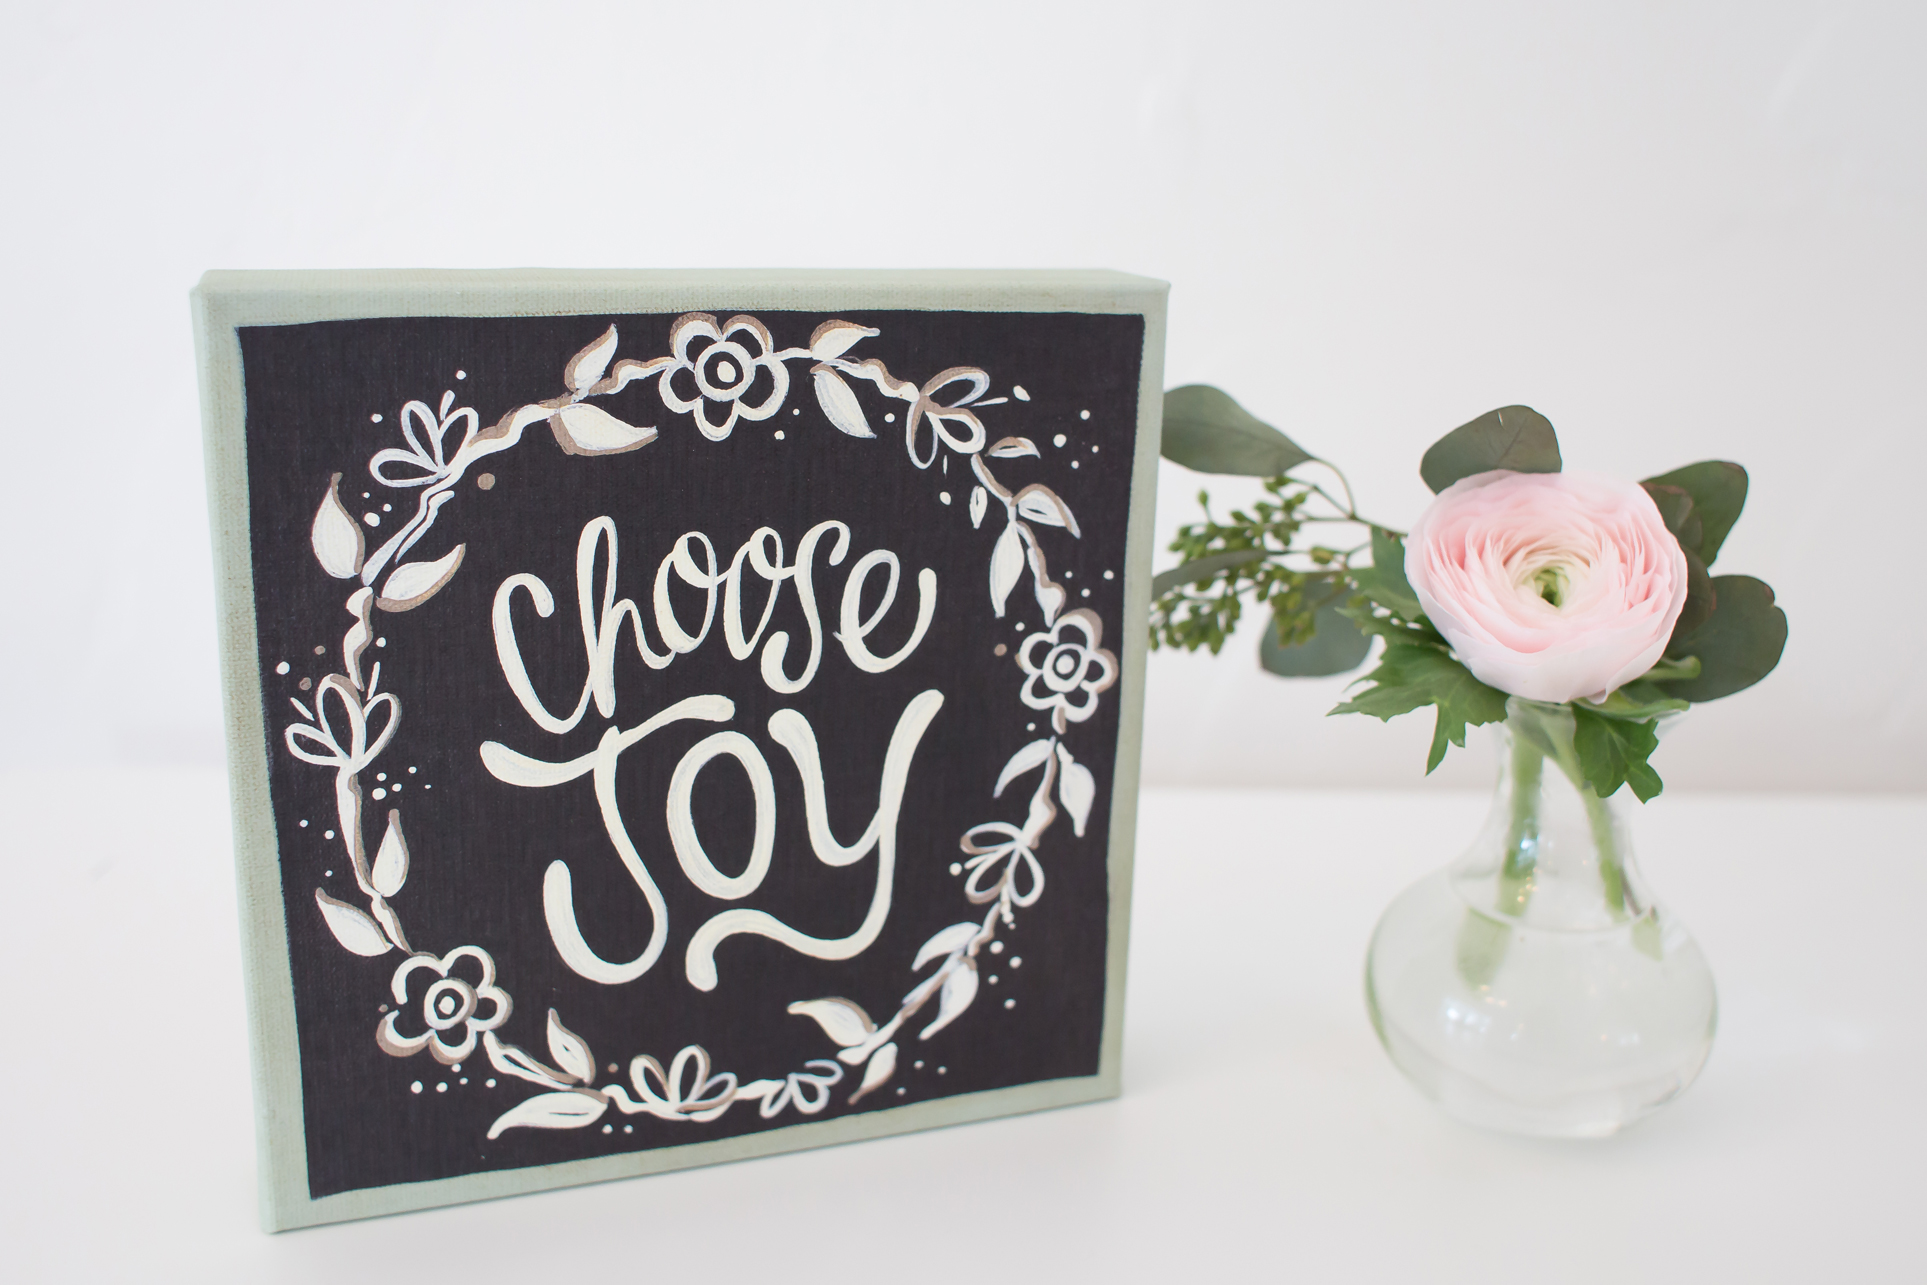 Get our new Choose Joy Canvas for just $13.50 right now!